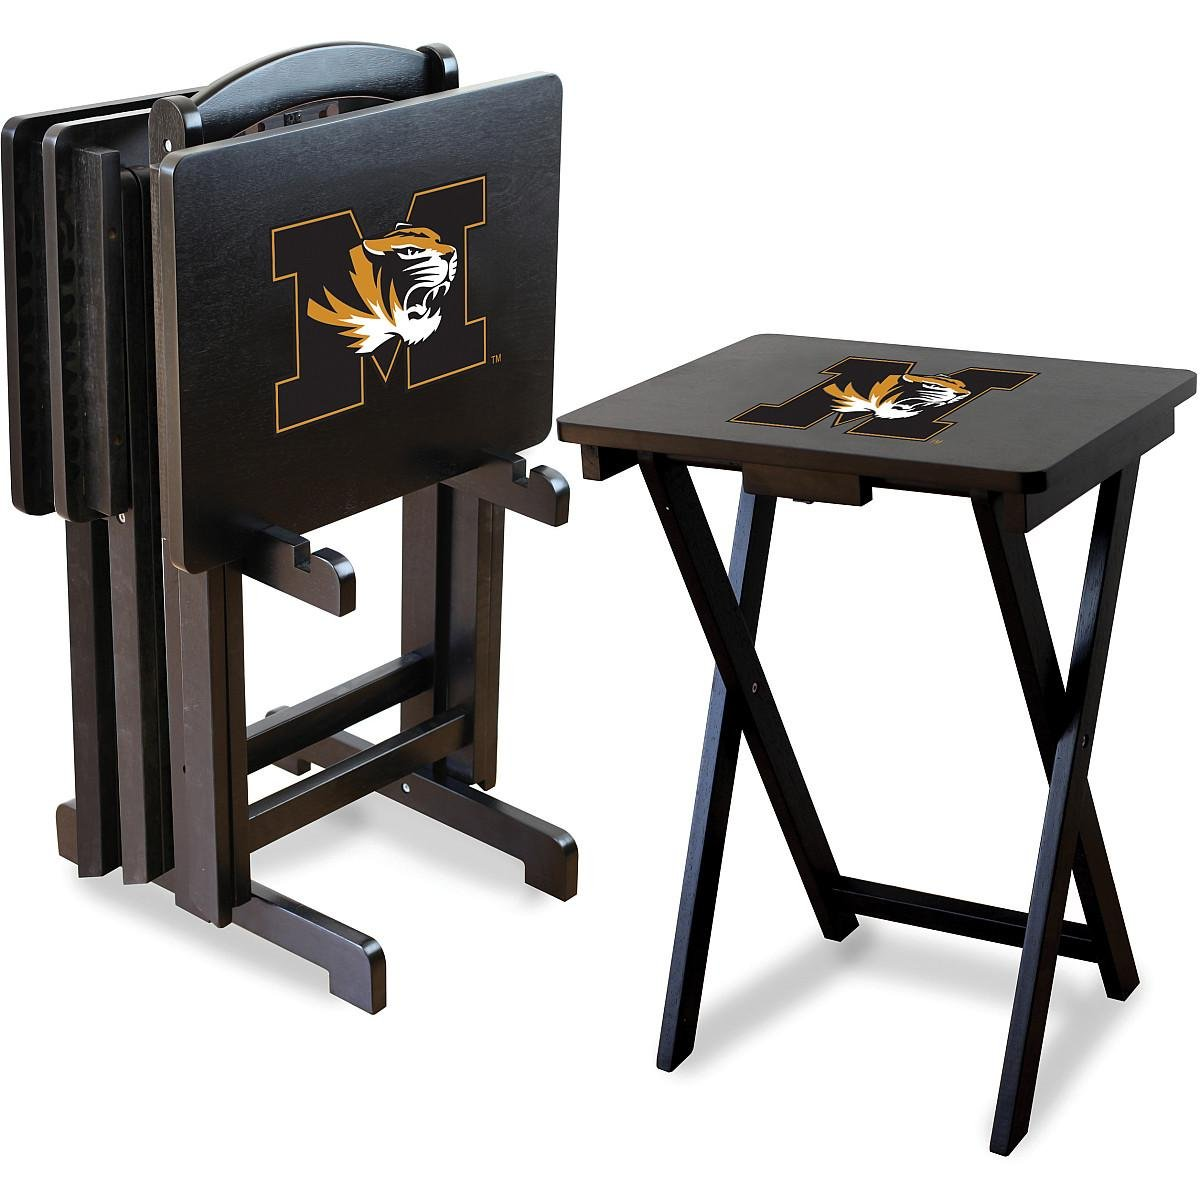 Imperial Officially Licensed NCAA Merchandise: Foldable Wood TV Tray Table Set with Stand, Missouri Tigers by Imperial